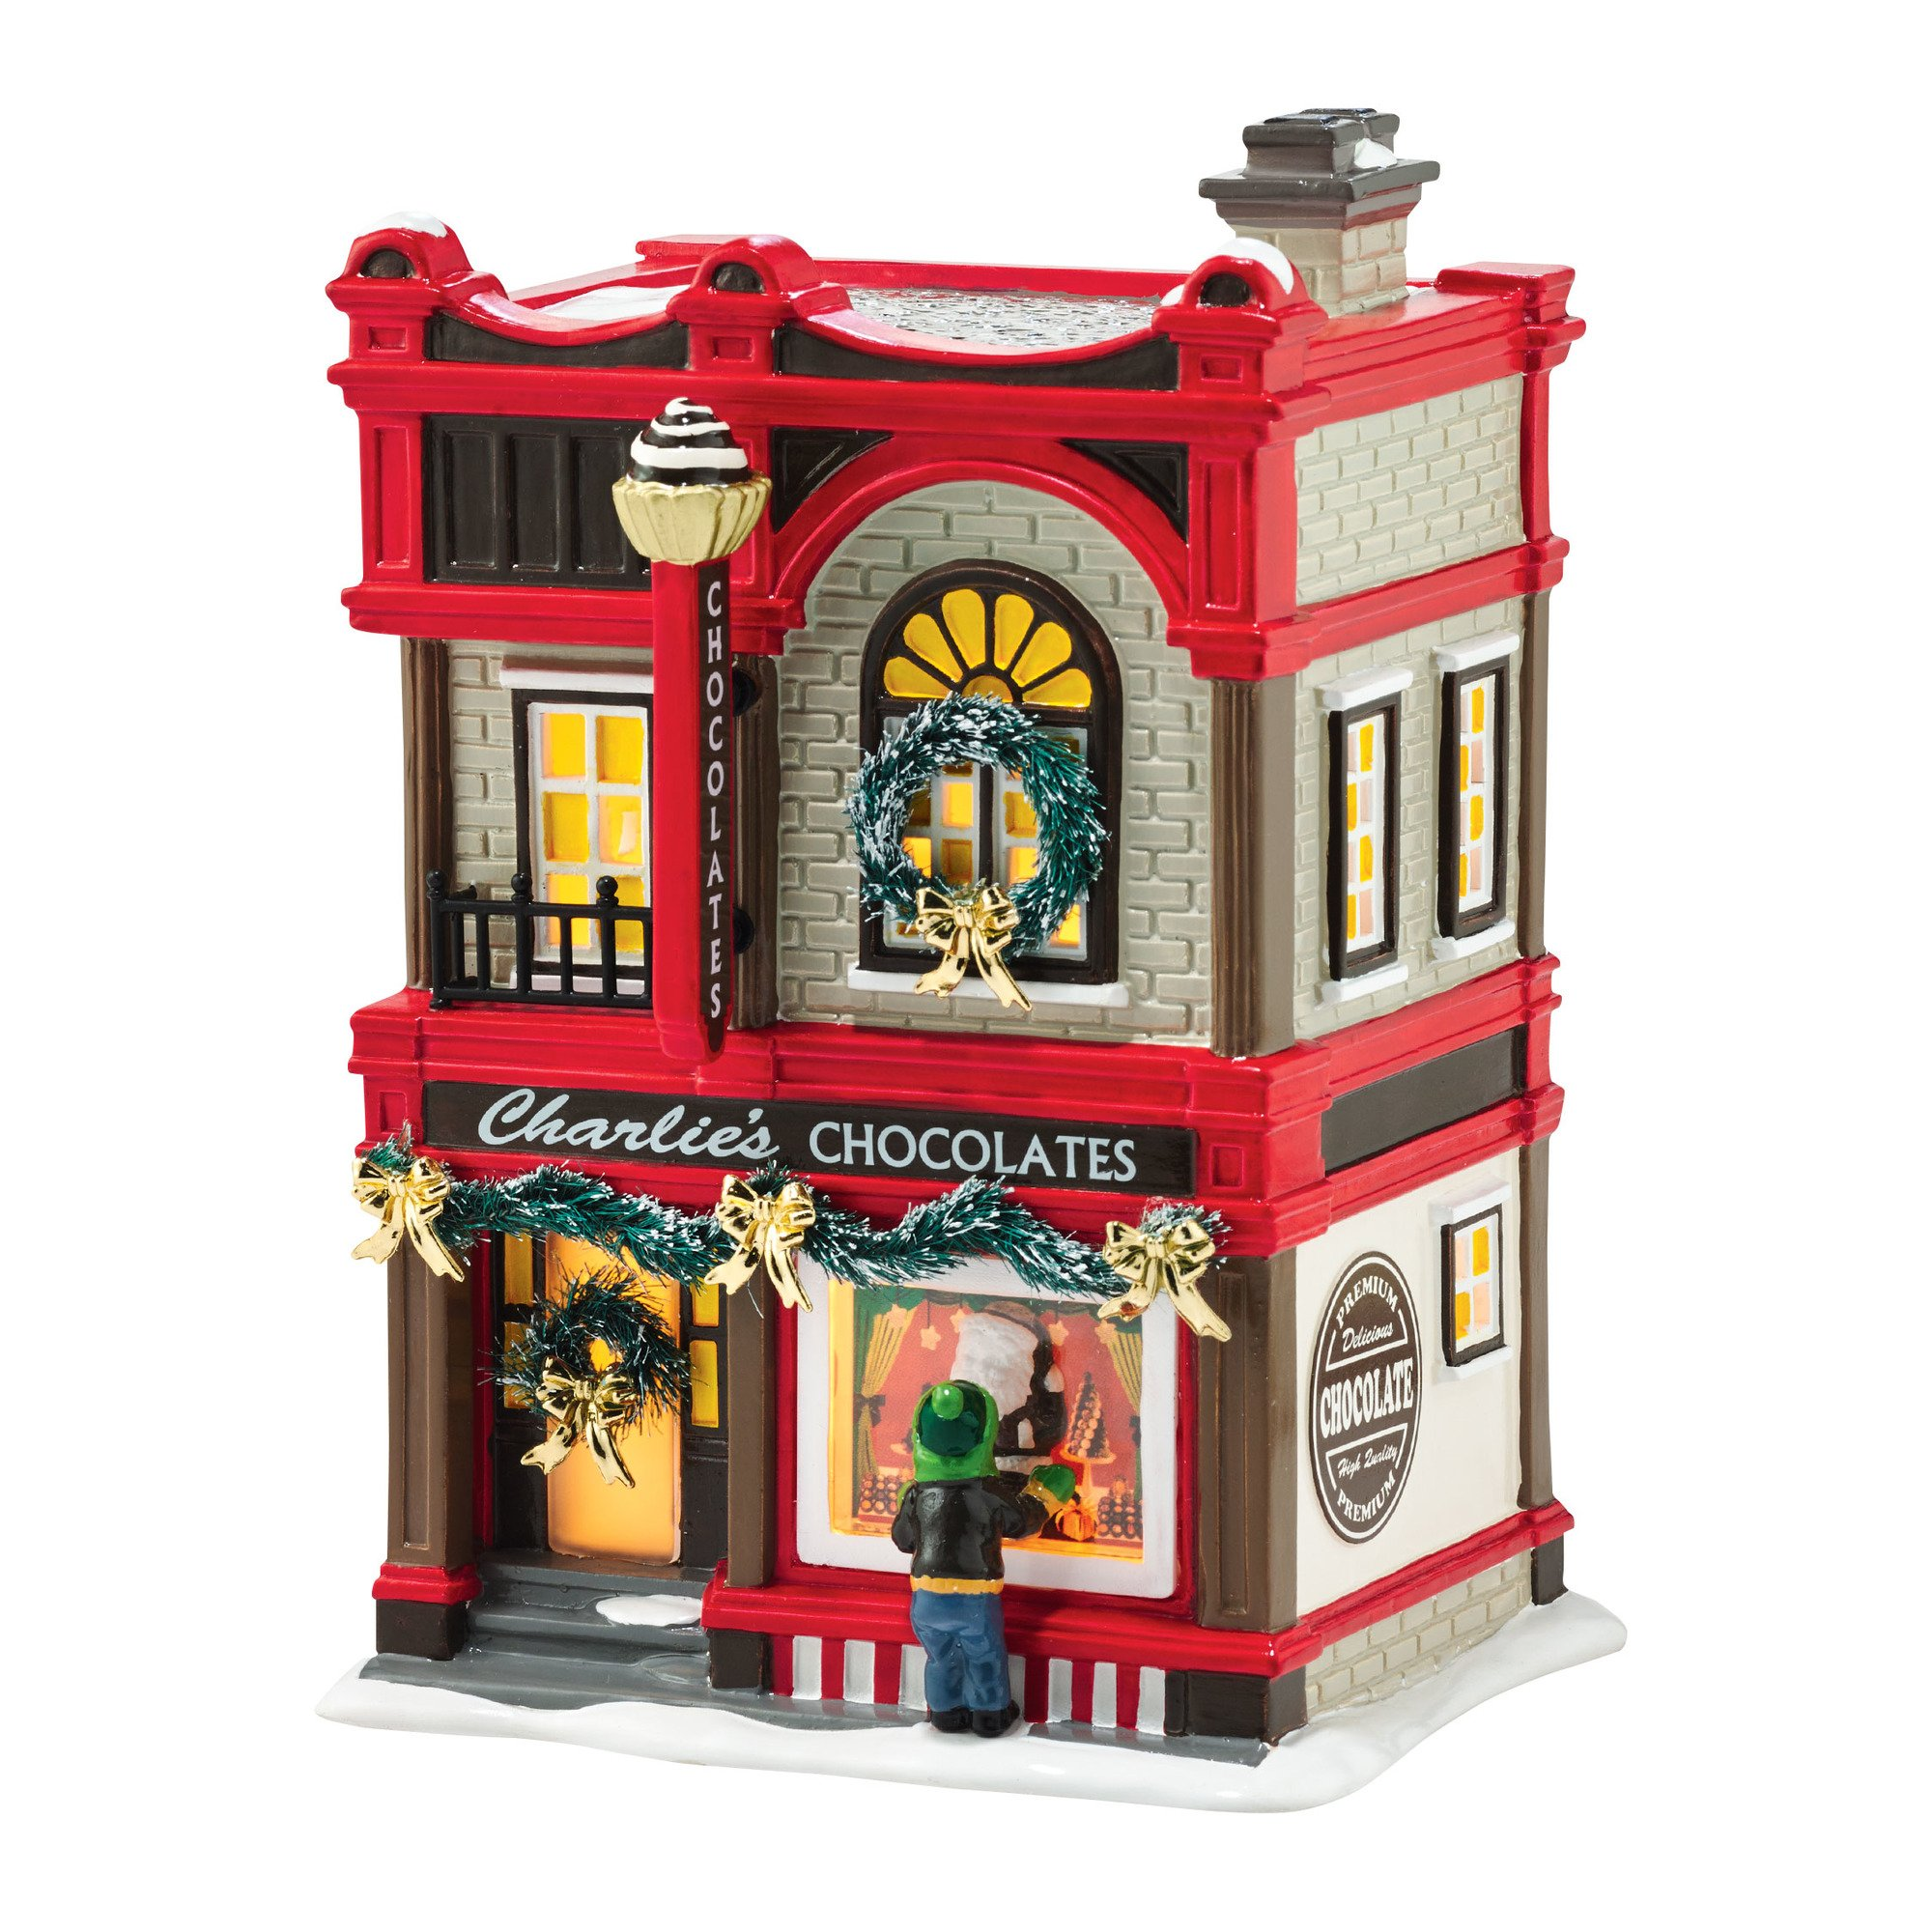 department 56 by enesco snow villagechristmas sweets porcelain lit house - Ceramic Christmas Houses